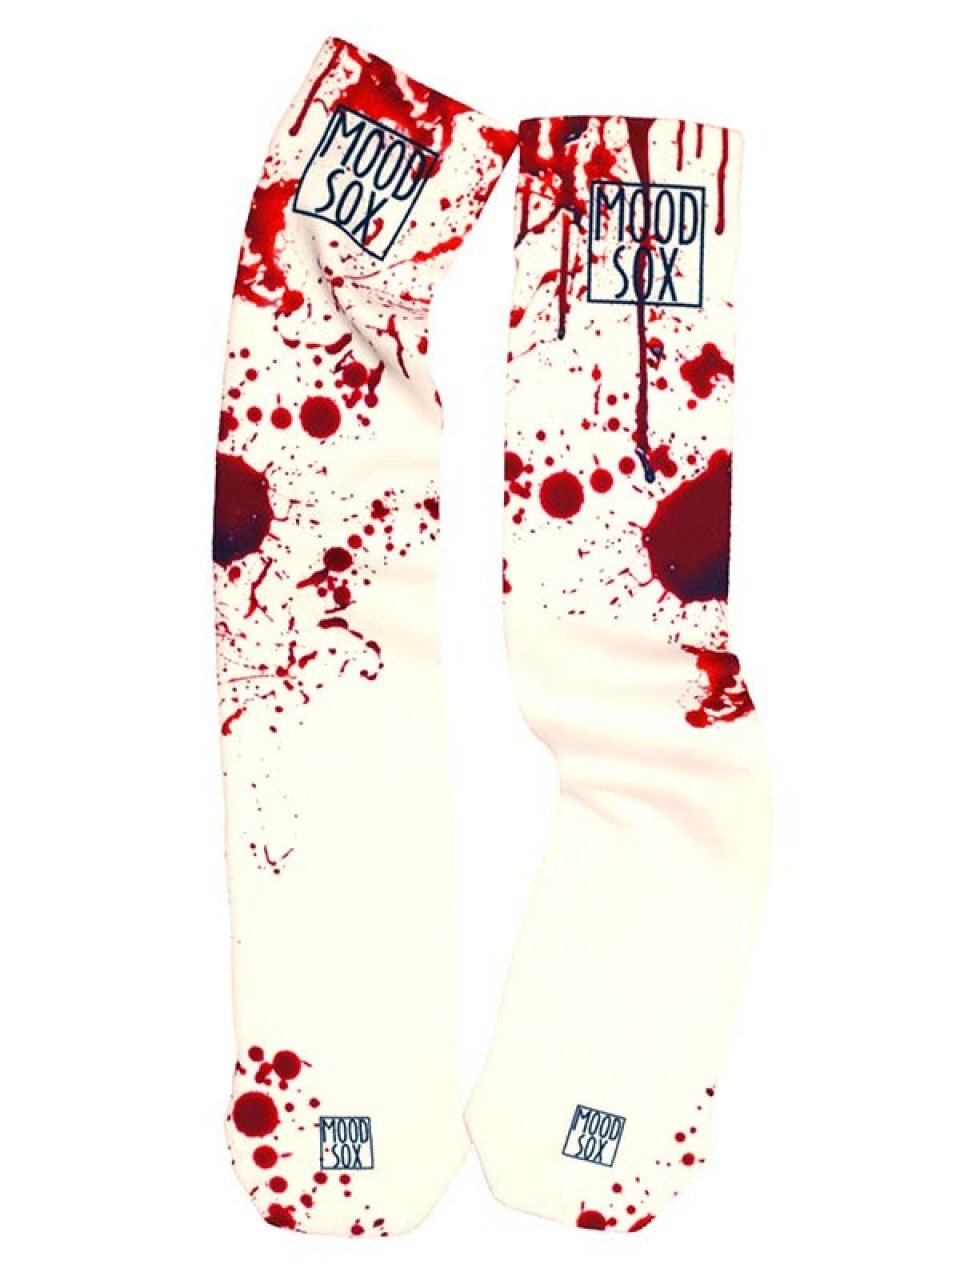 Blood SoX